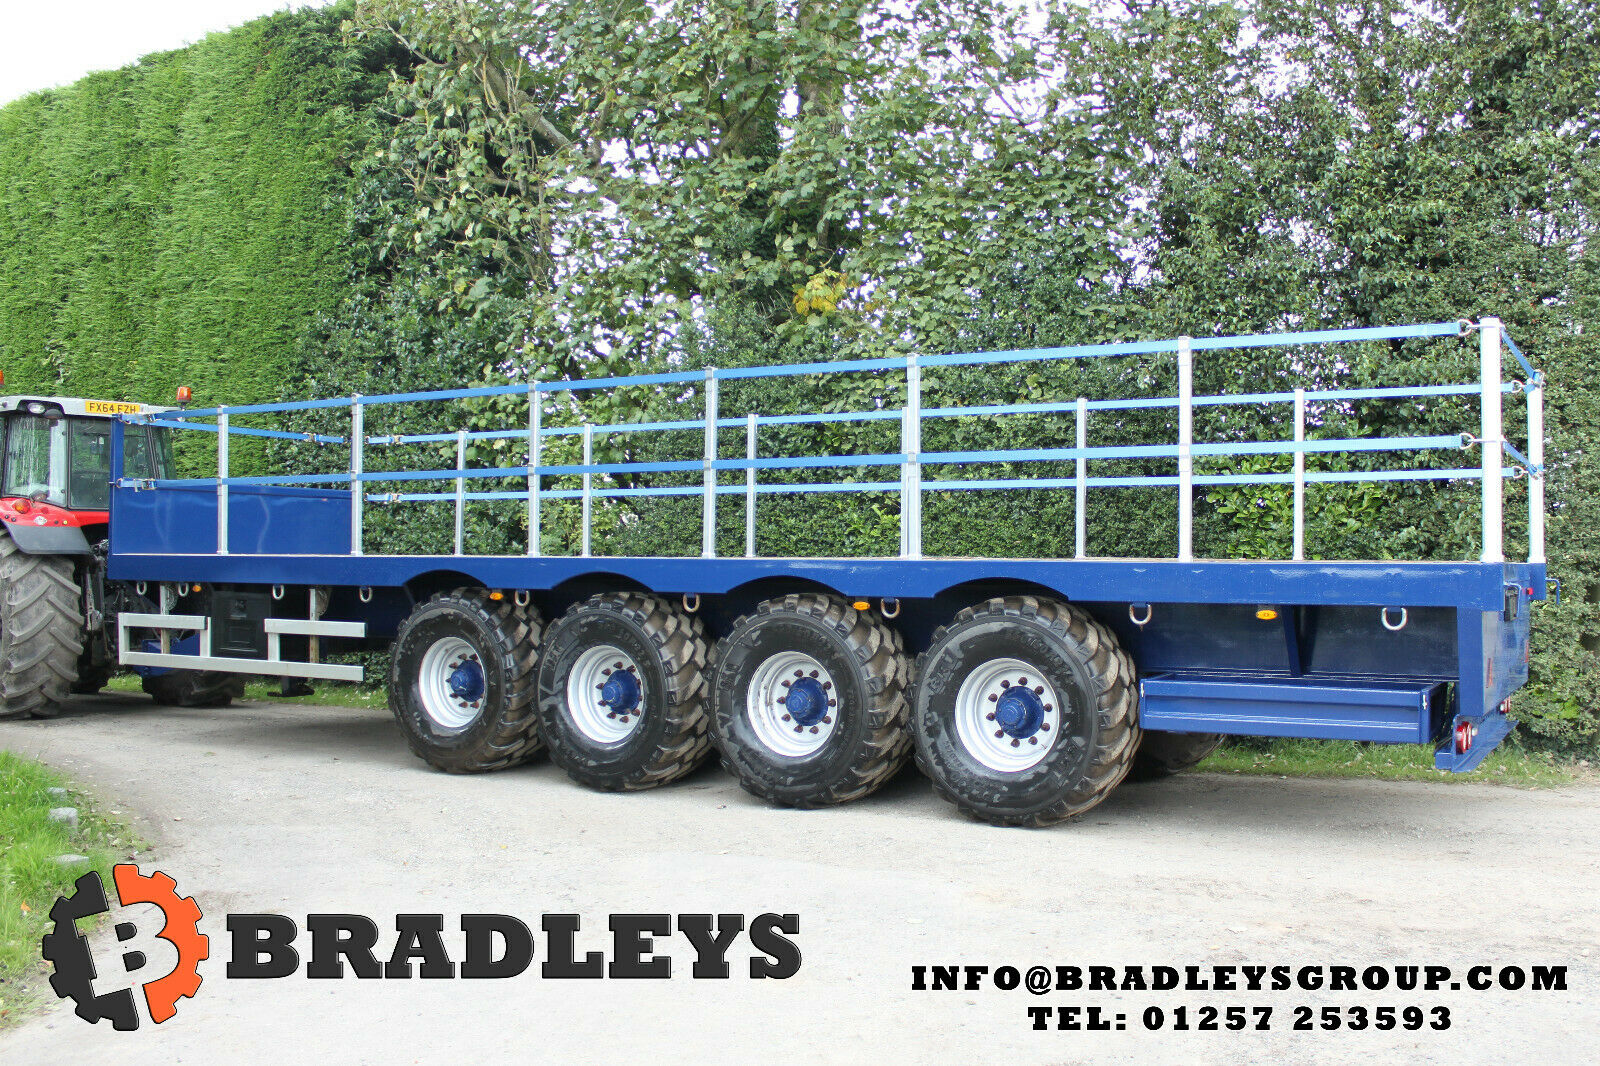 32ft Low Ground Pressure 4 Axle Flat Trailer Agri hitch & fall protection system